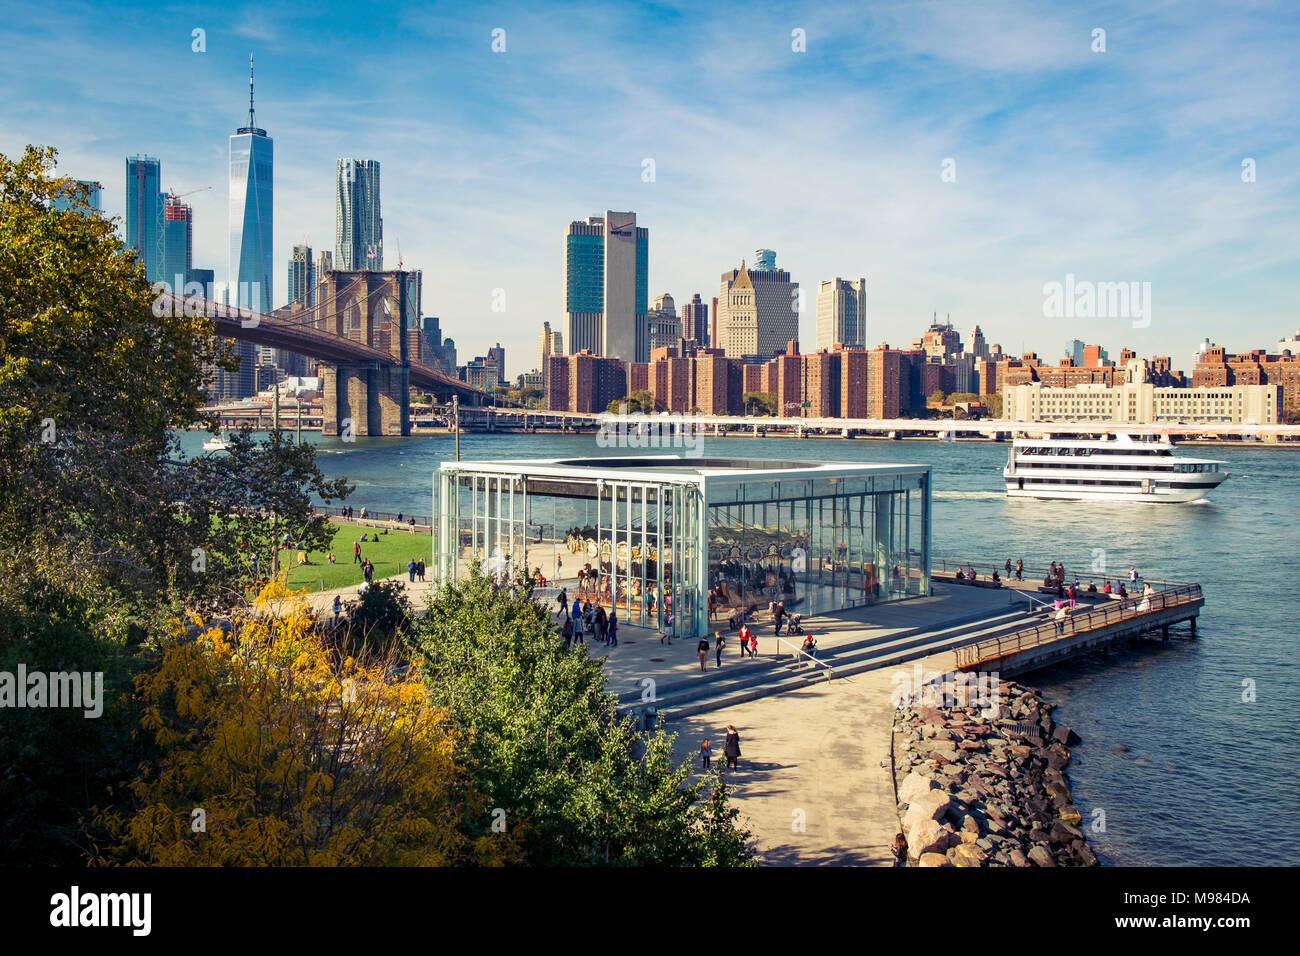 USA, New York City, skyline and Brooklyn Bridge with Jane's Carousel - Stock Image